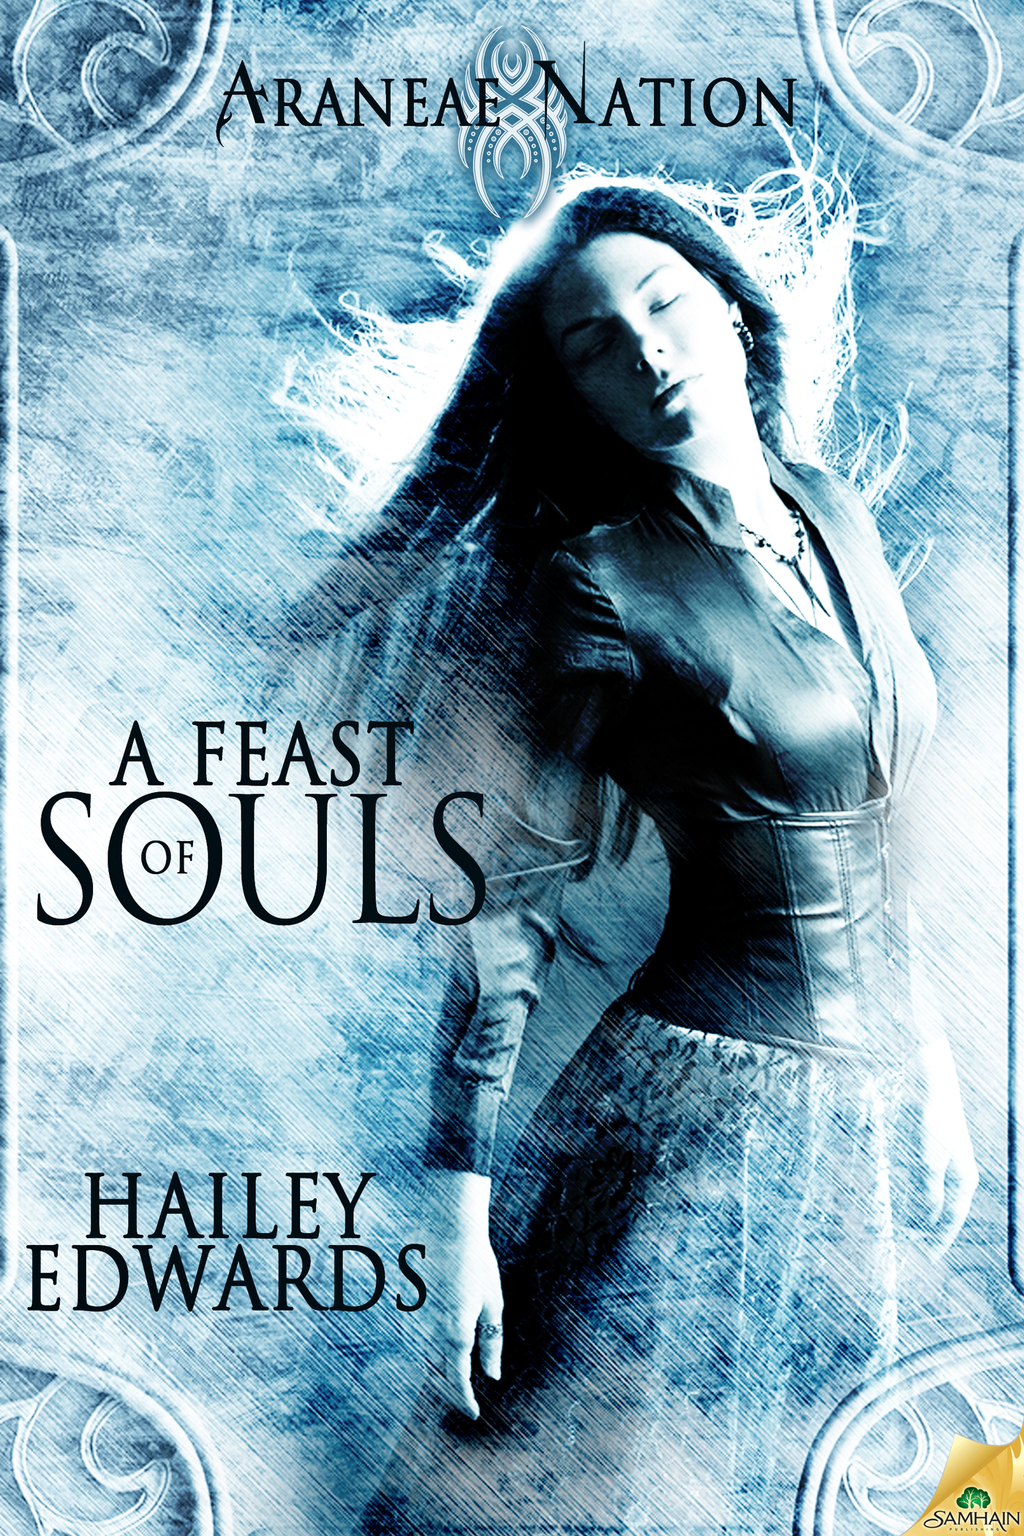 A Feast of Souls